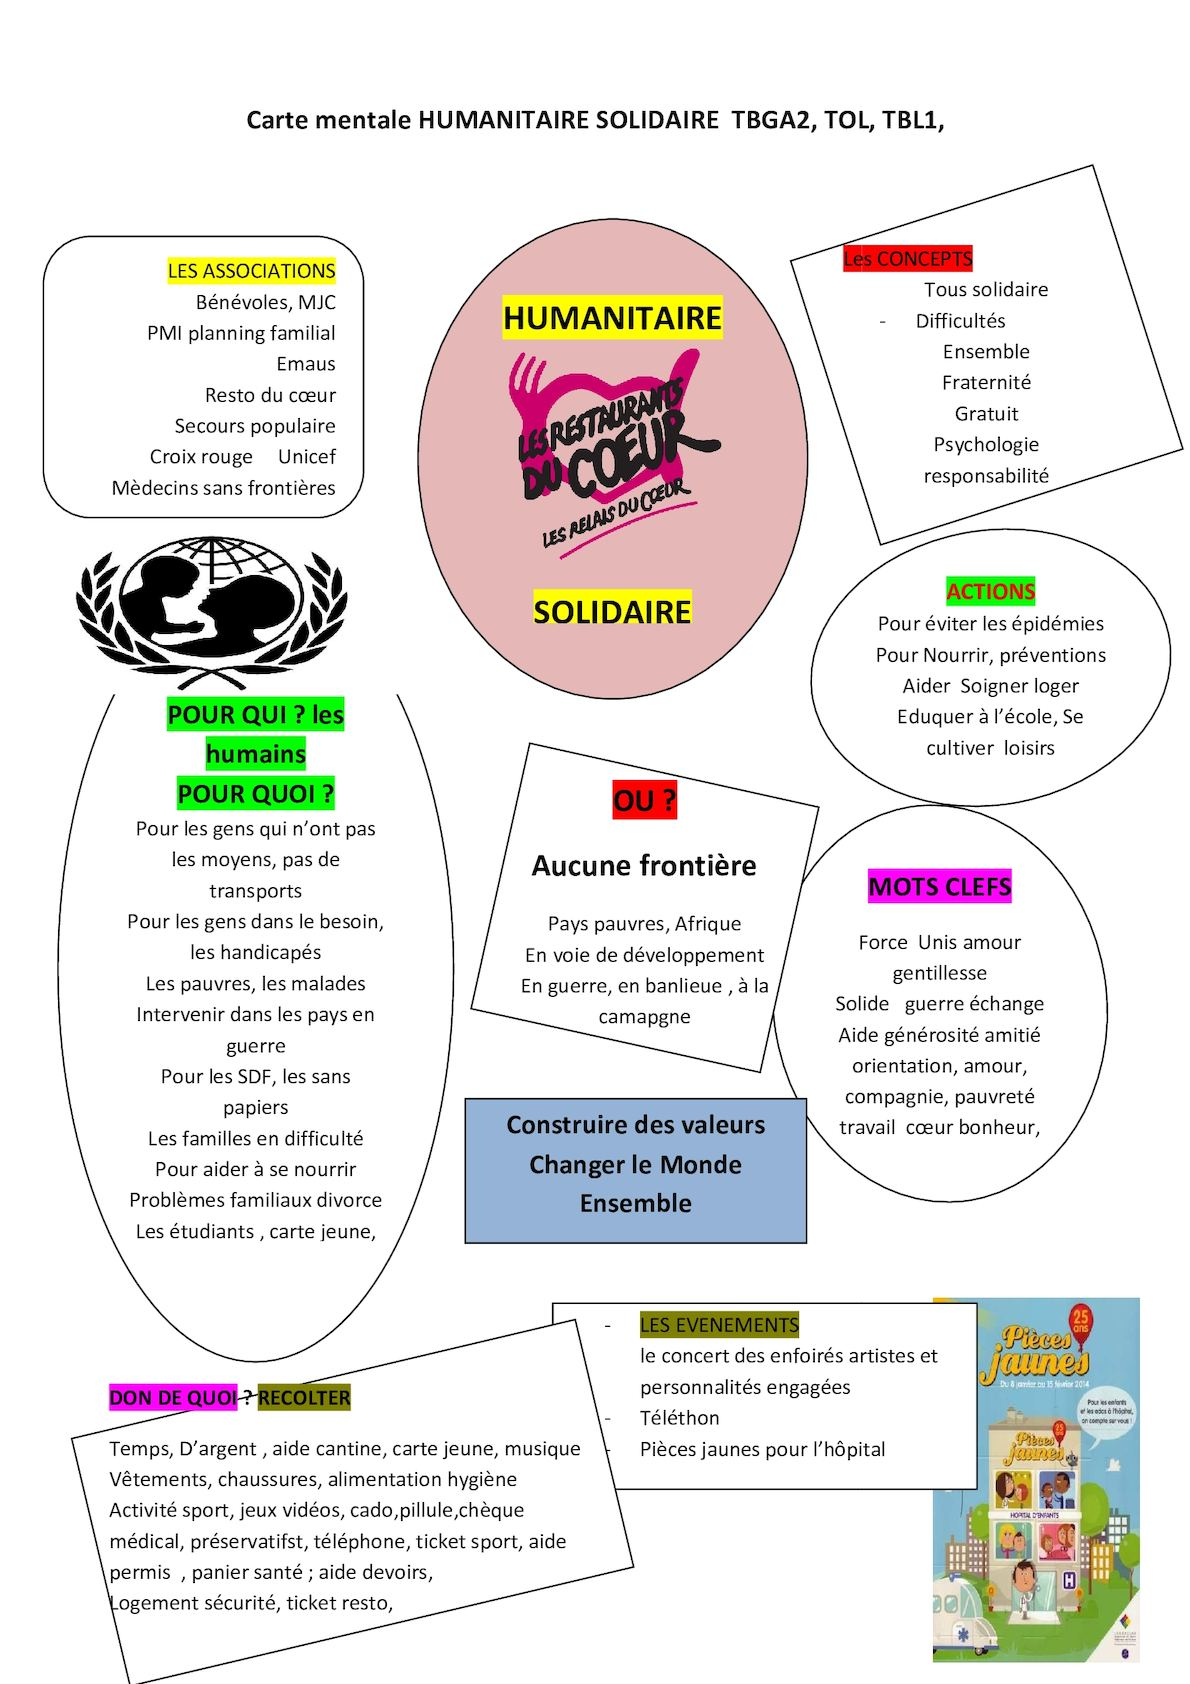 Carte Mentale Humanitaire Solidaire